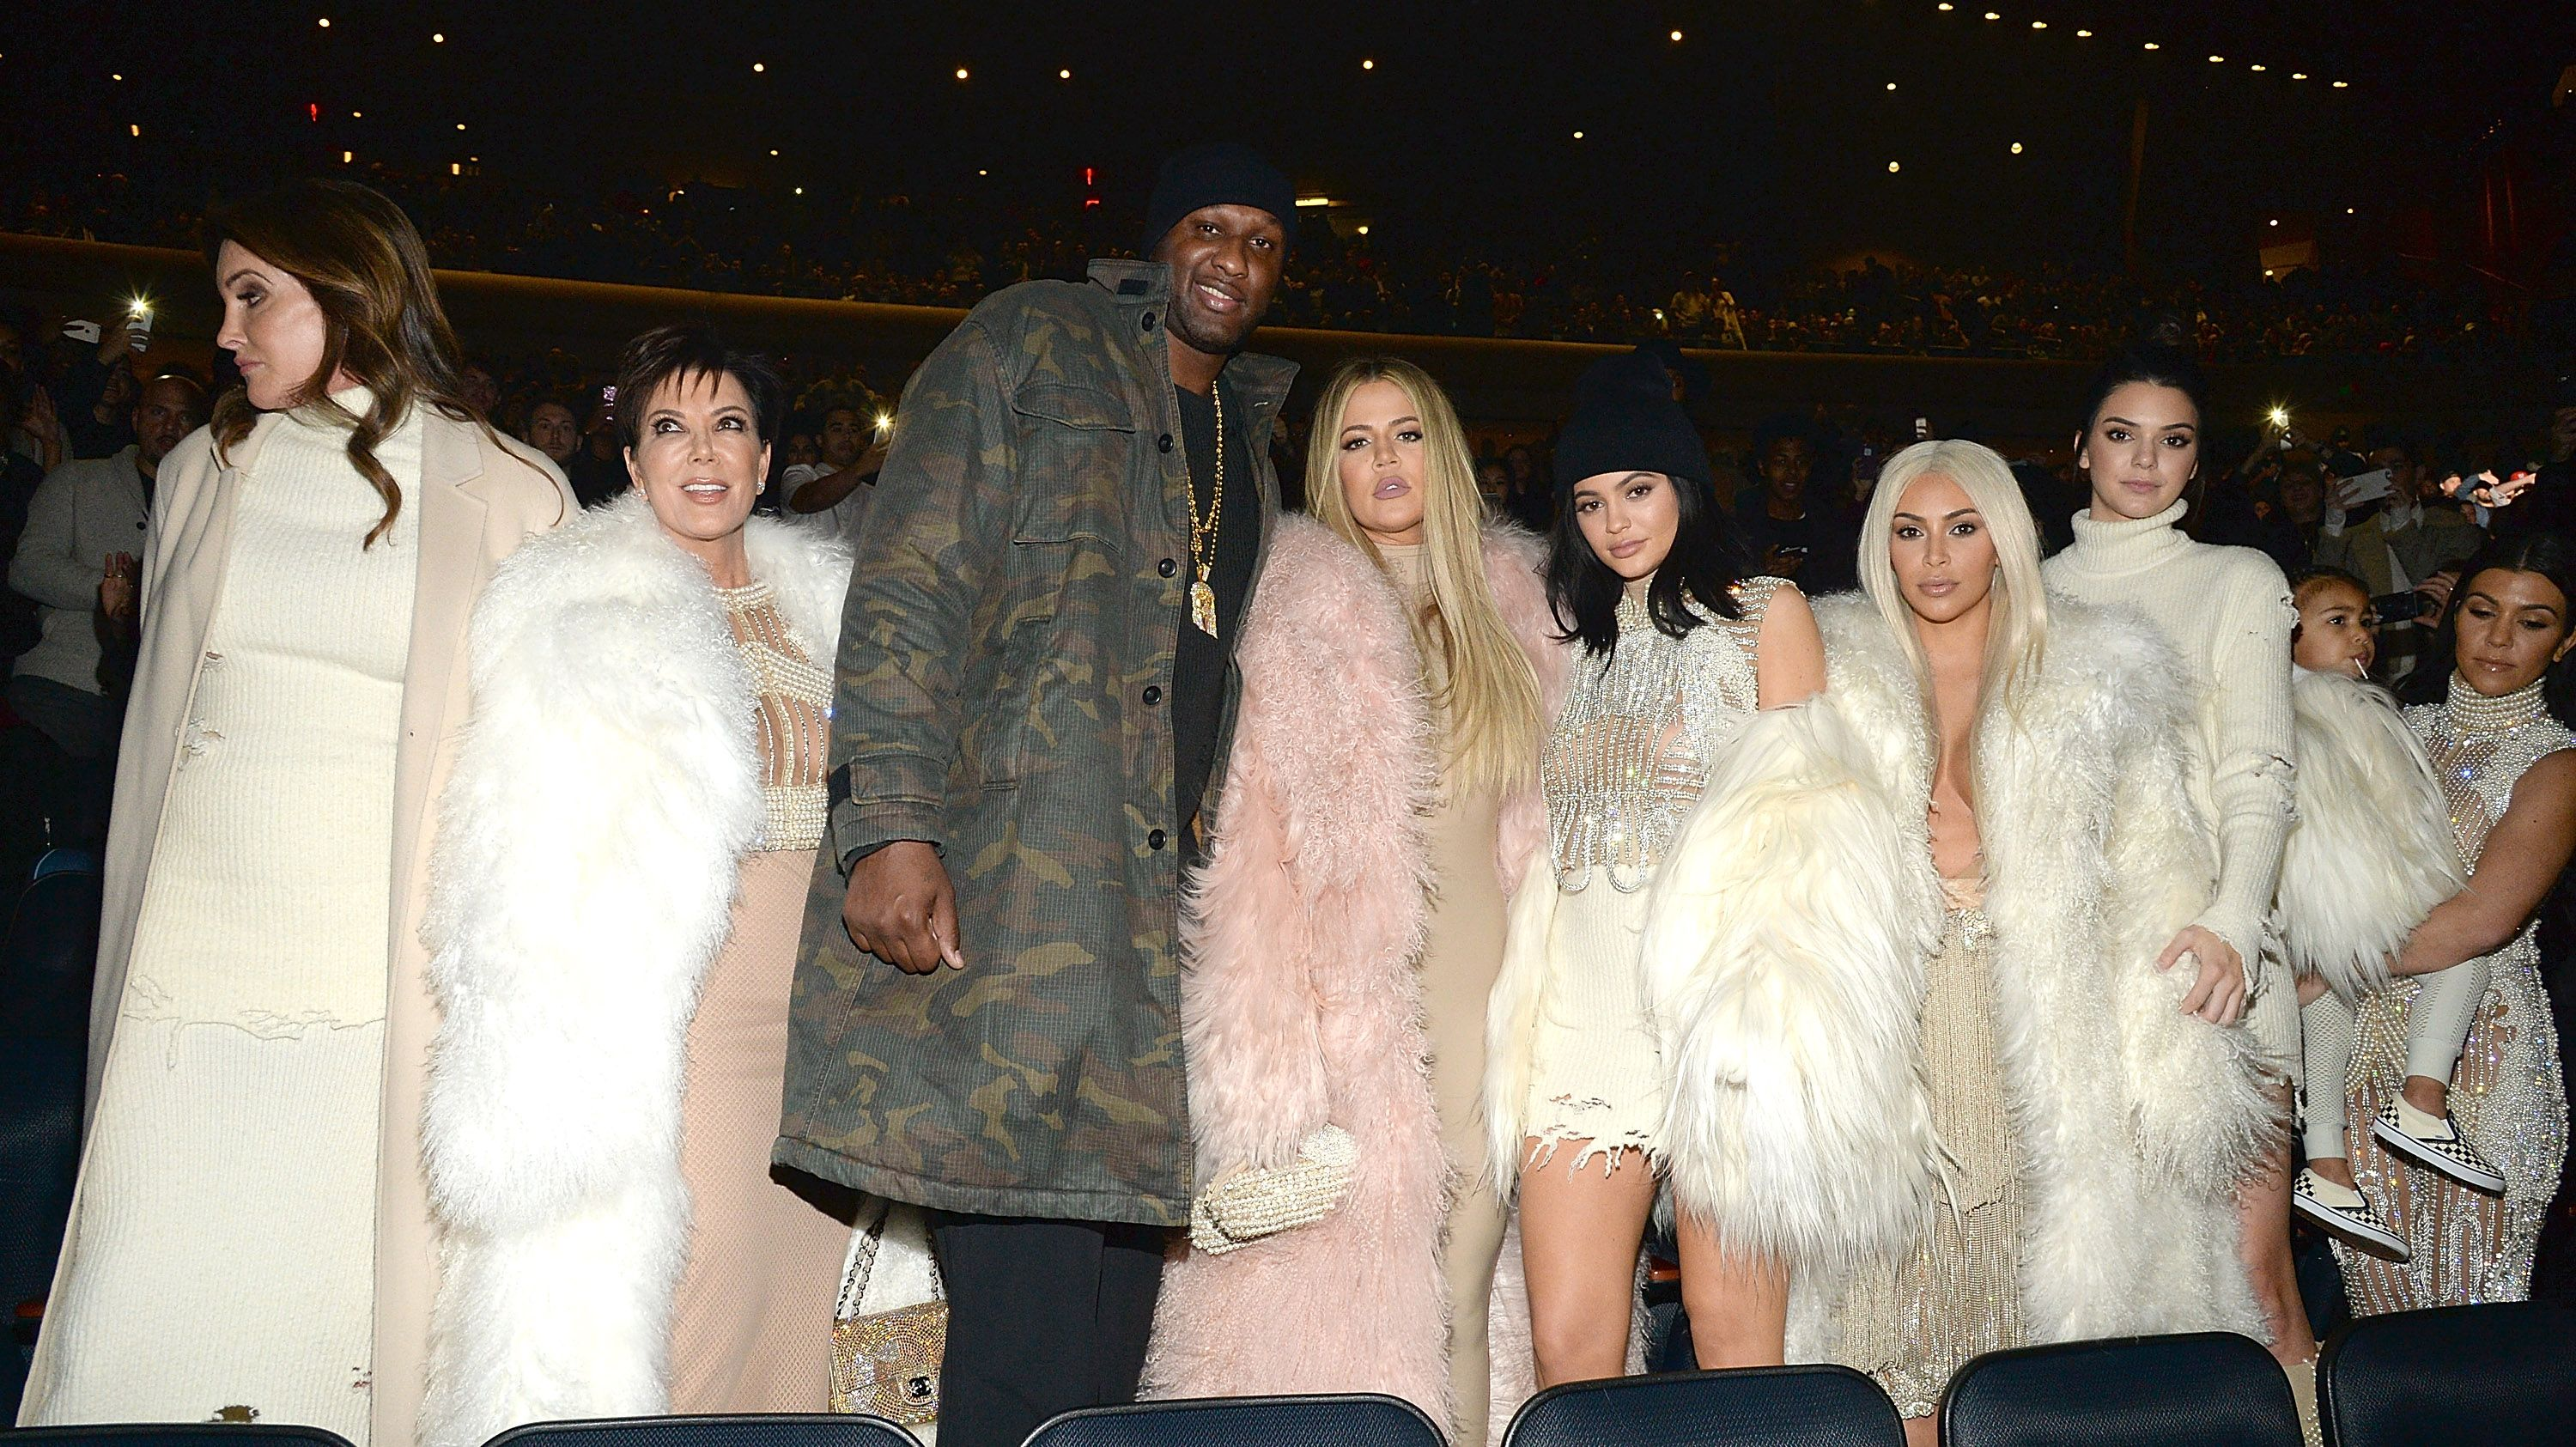 Lamar Odom and ex-wife Khloe and the Kardashian family at Kanye West Yeezy Season 3 at Madison Square Garden in 2016/ Source: Getty Images